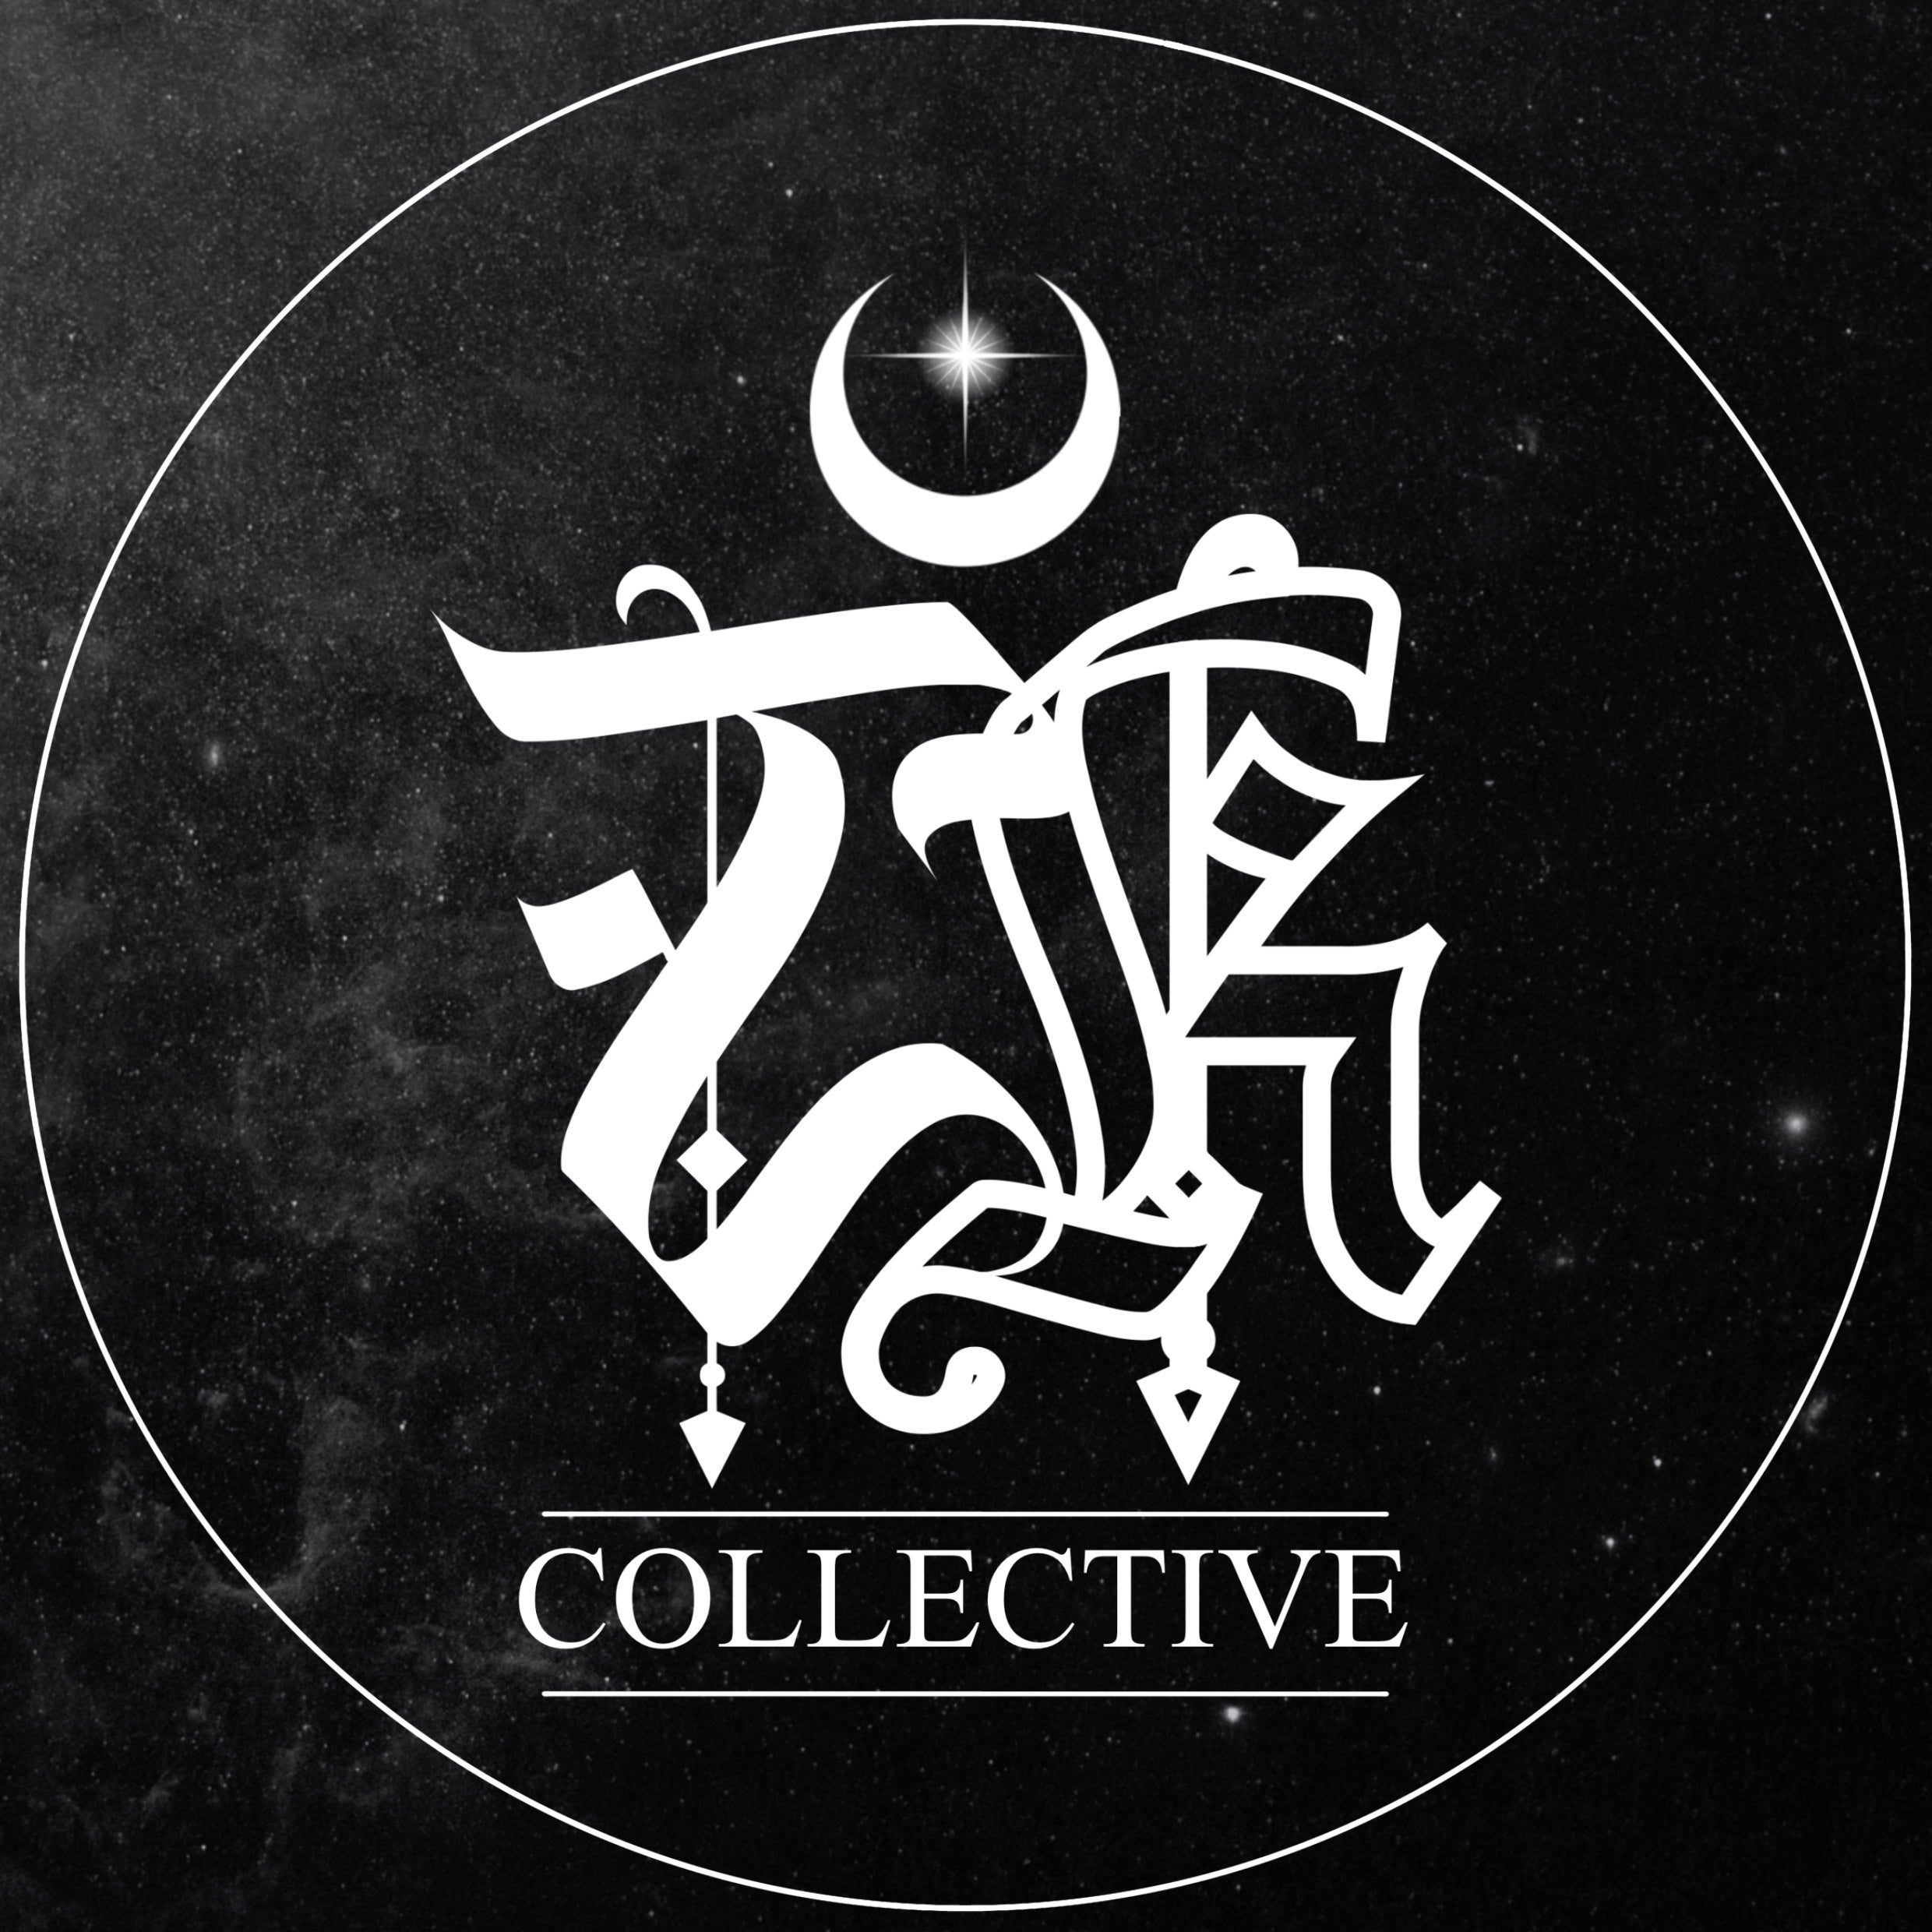 Foxx & Raccoon Collective's account image